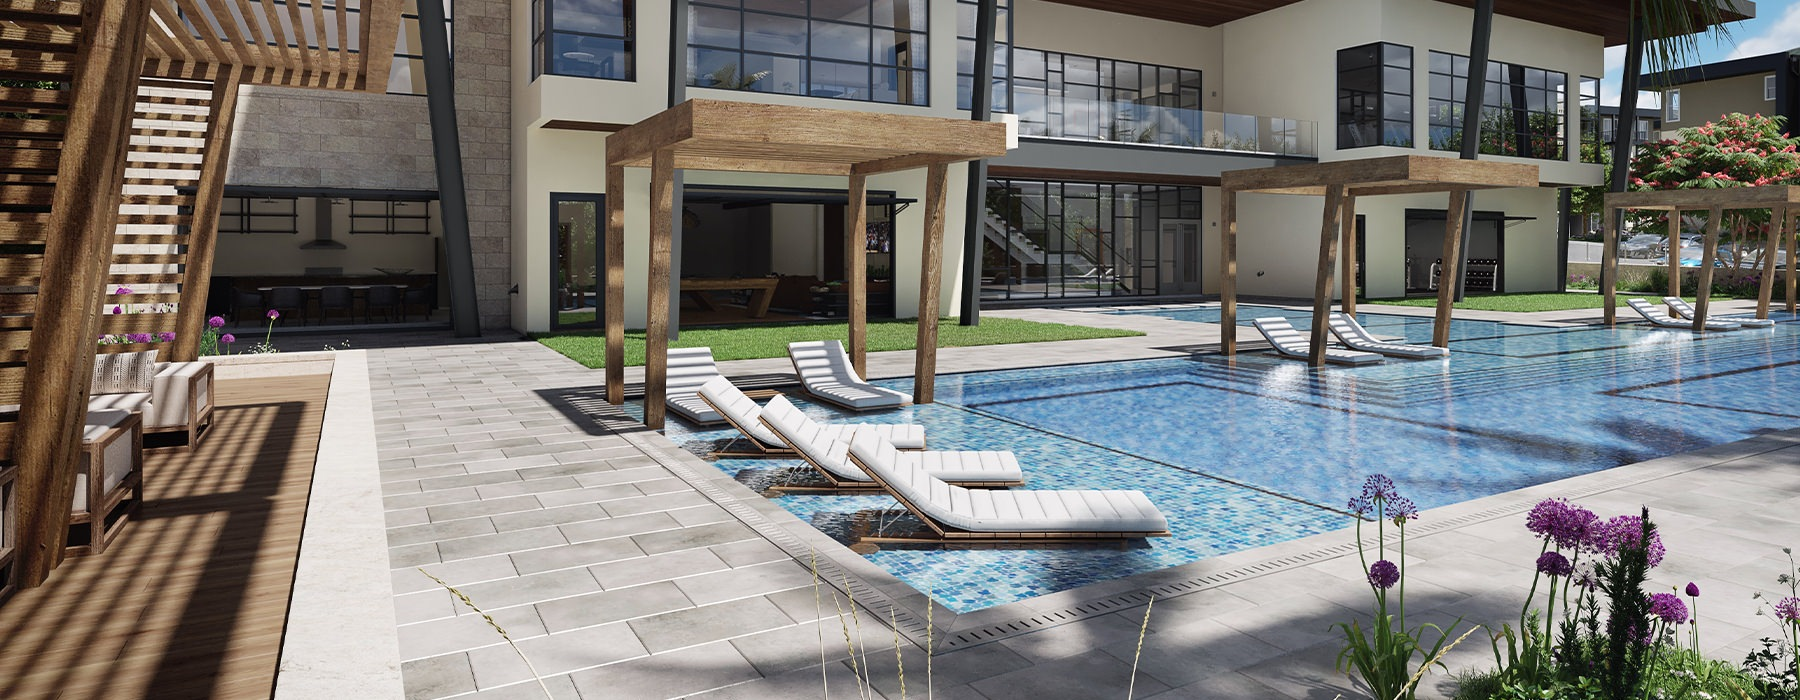 Spacious sparkling pool with sundecks and cabanas for lounging.